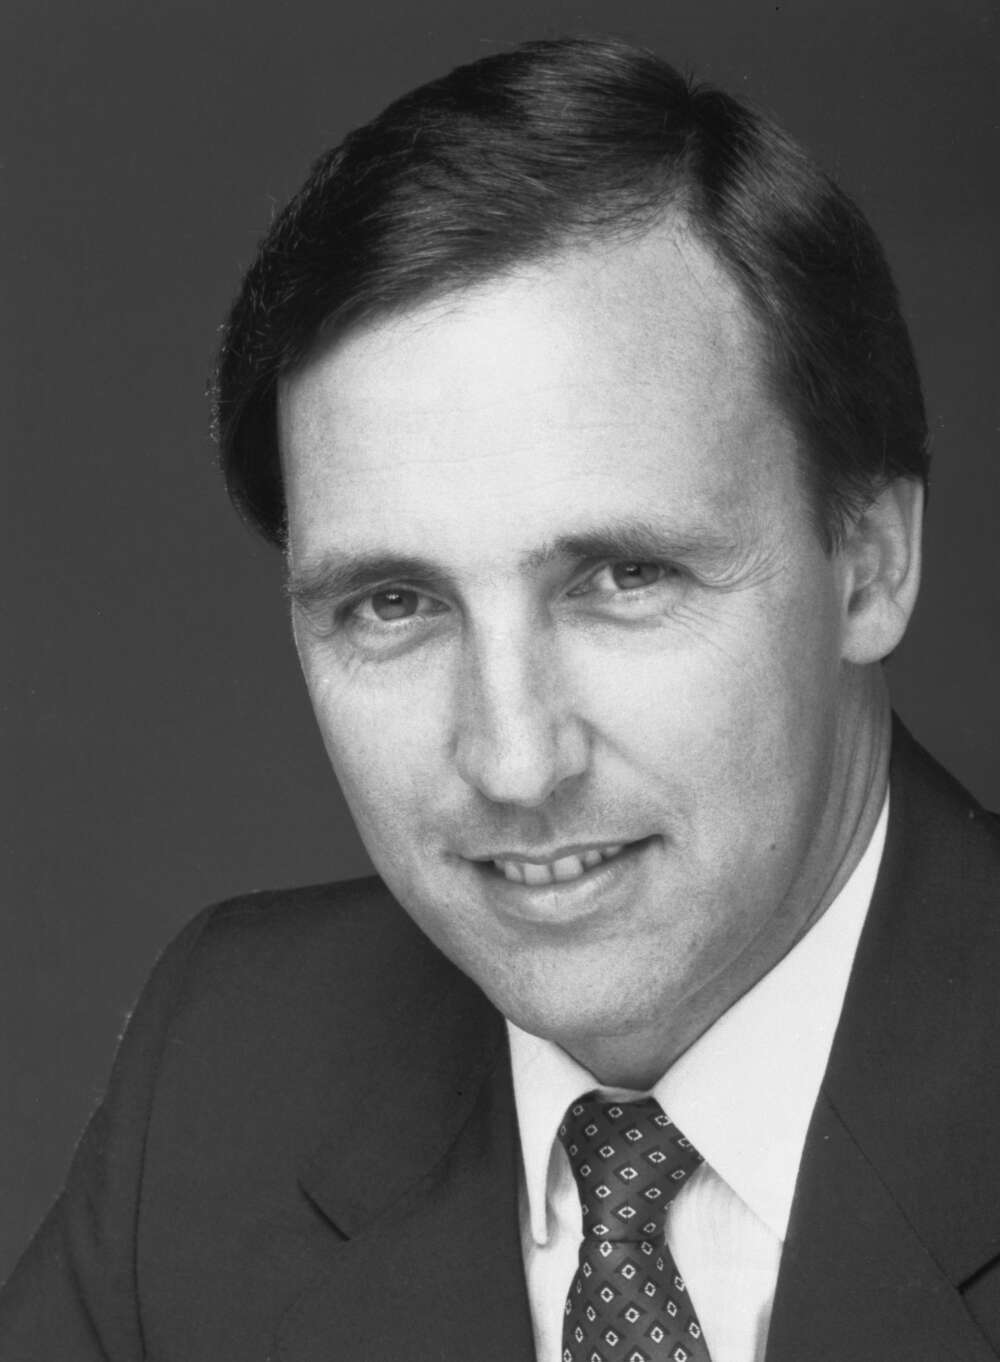 Portrait of Paul Keating - click to view larger image